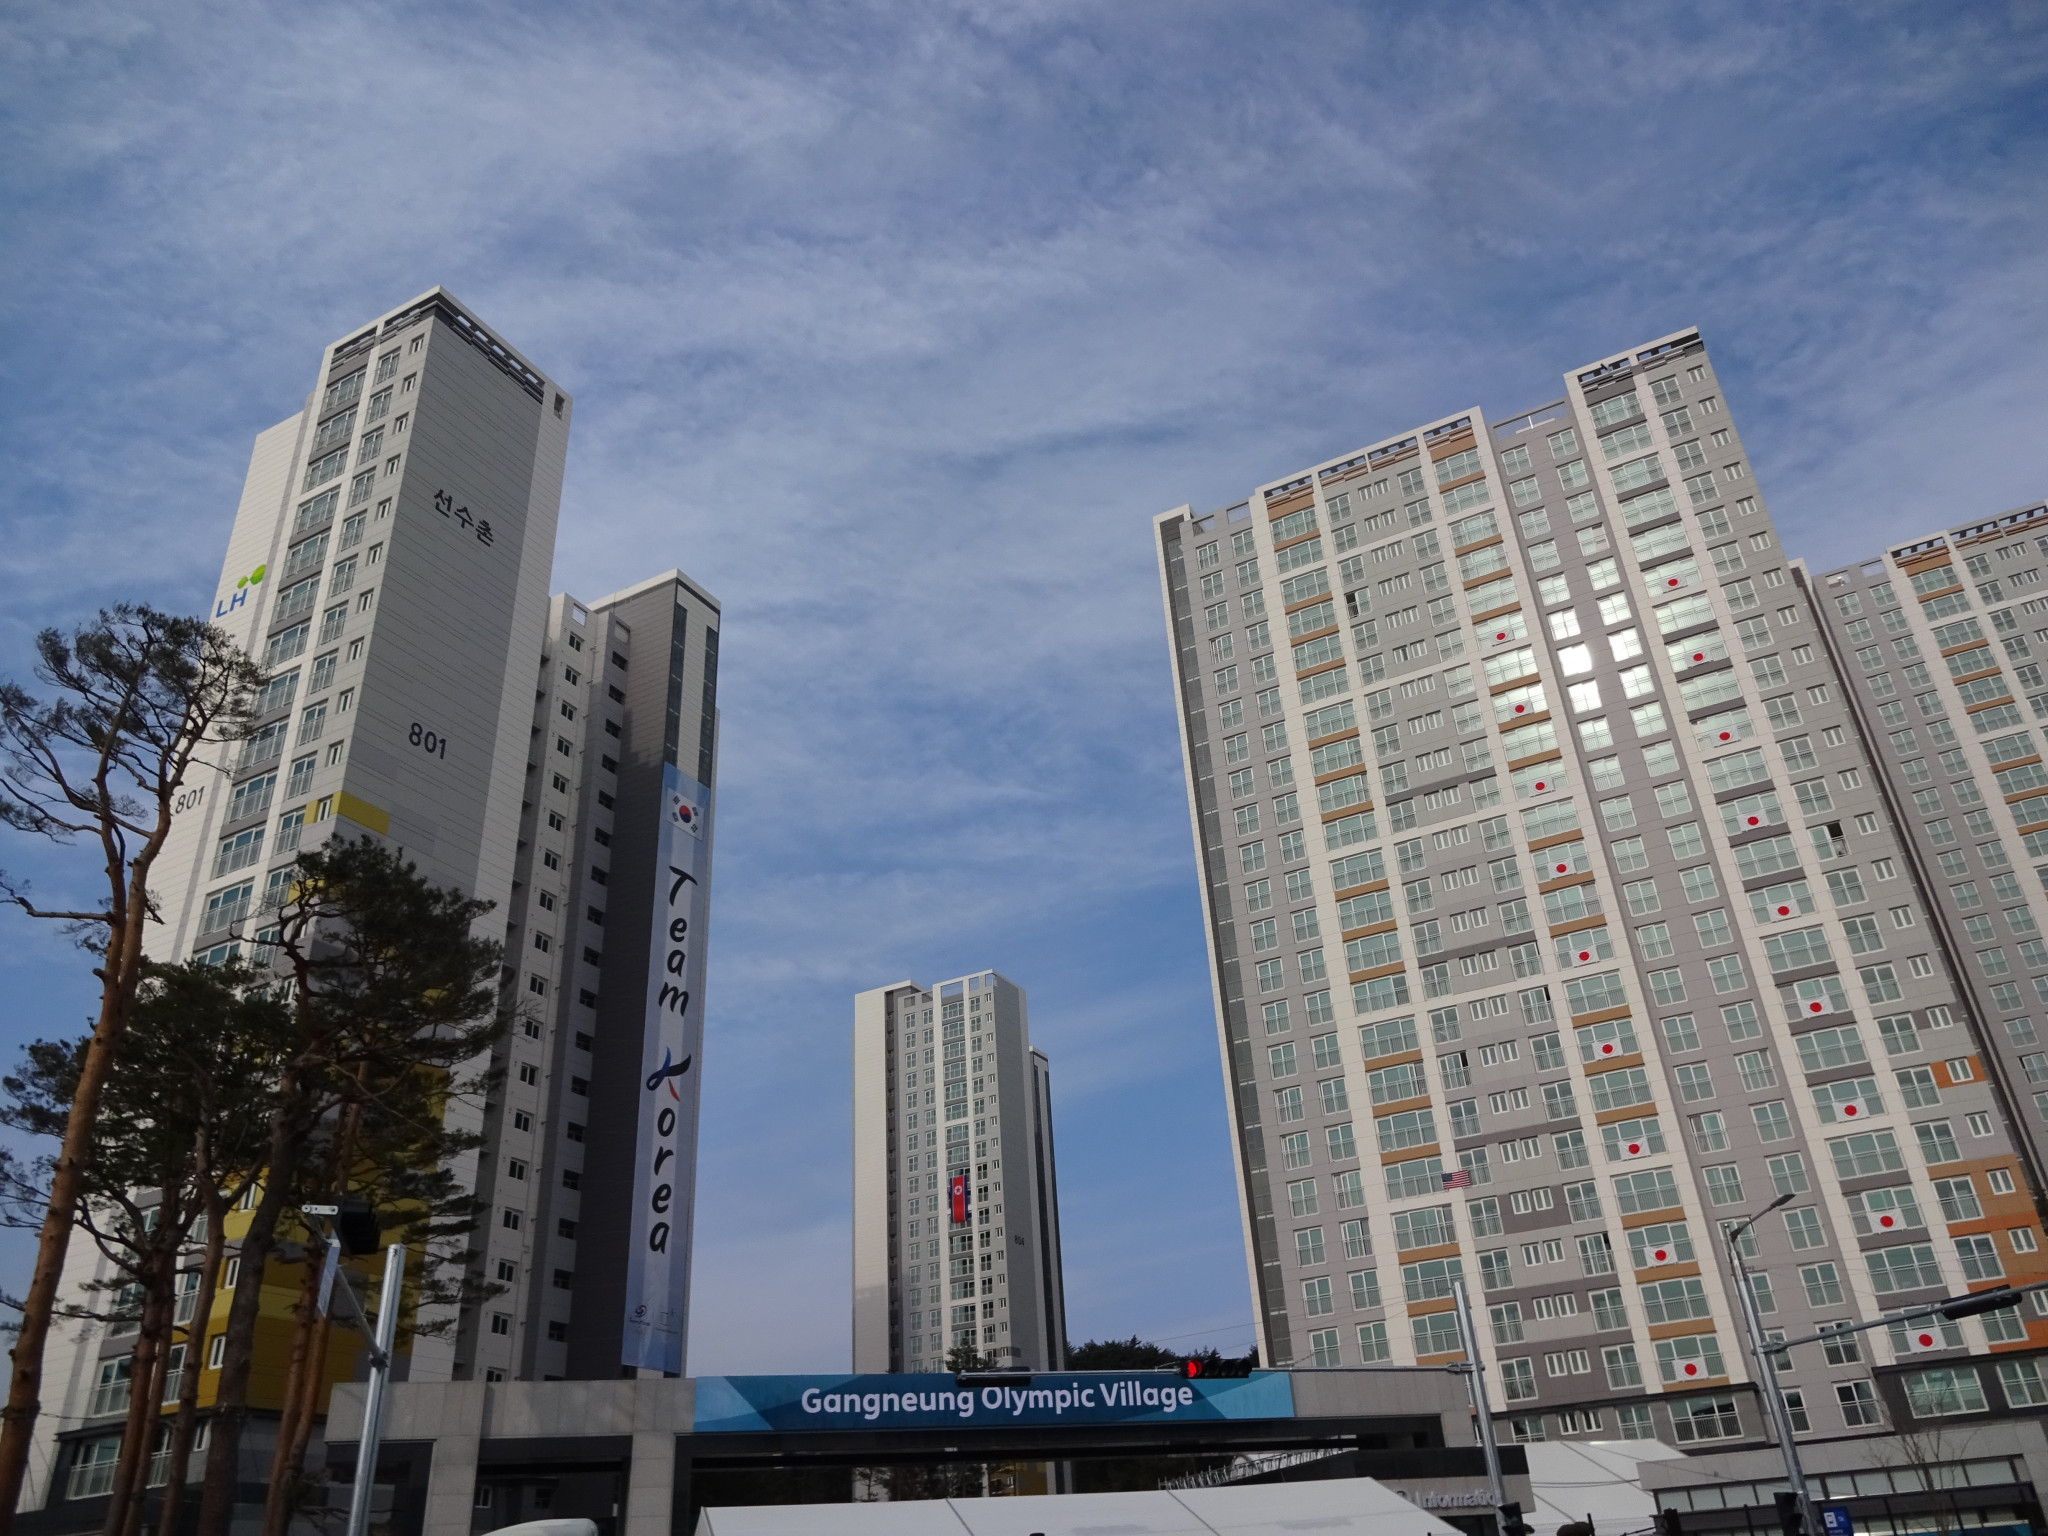 The two Koreas were housed close to one another in the Olympic Village at Pyeongchang 2018 ©Philip Barker